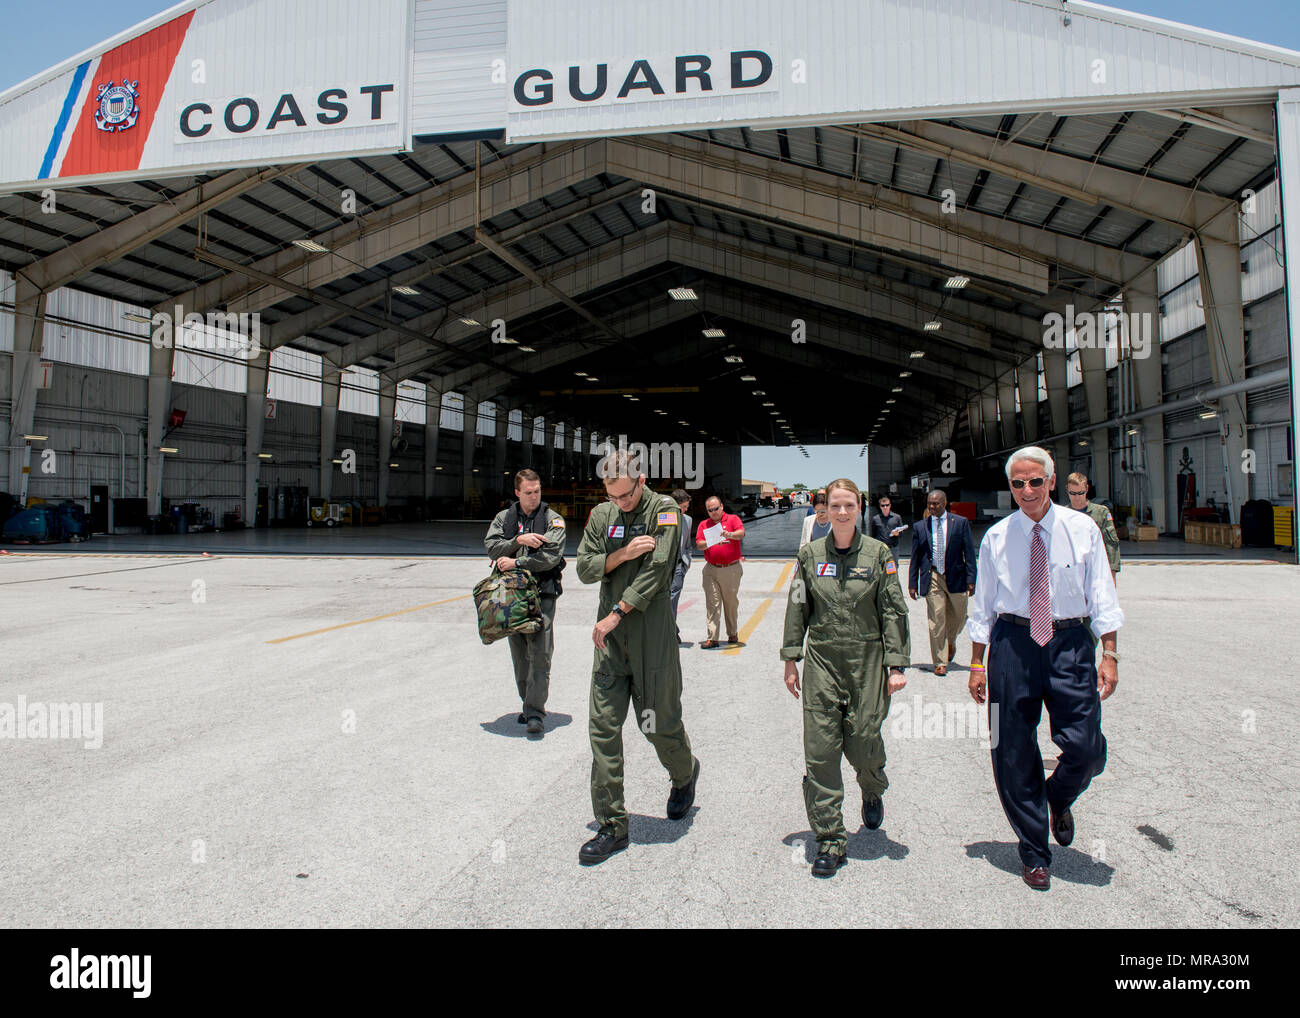 Congressman Charlie Crist, U.S. Representative for Florida's 13th District, right, speaks with Air Station Clearwater crew members Tuesday, May 30, 2017, prior to an aerial assessment of beach erosion along Pinellas County, Florida's coast. Coast Guard Air Station Clearwater MH-60 Jayhawk helicopter crew members provided the overflight for the congressman and Army Corps of Engineers personnel. U.S. Coast Guard by Petty Officer 1st Class Michael De Nyse - Stock Image